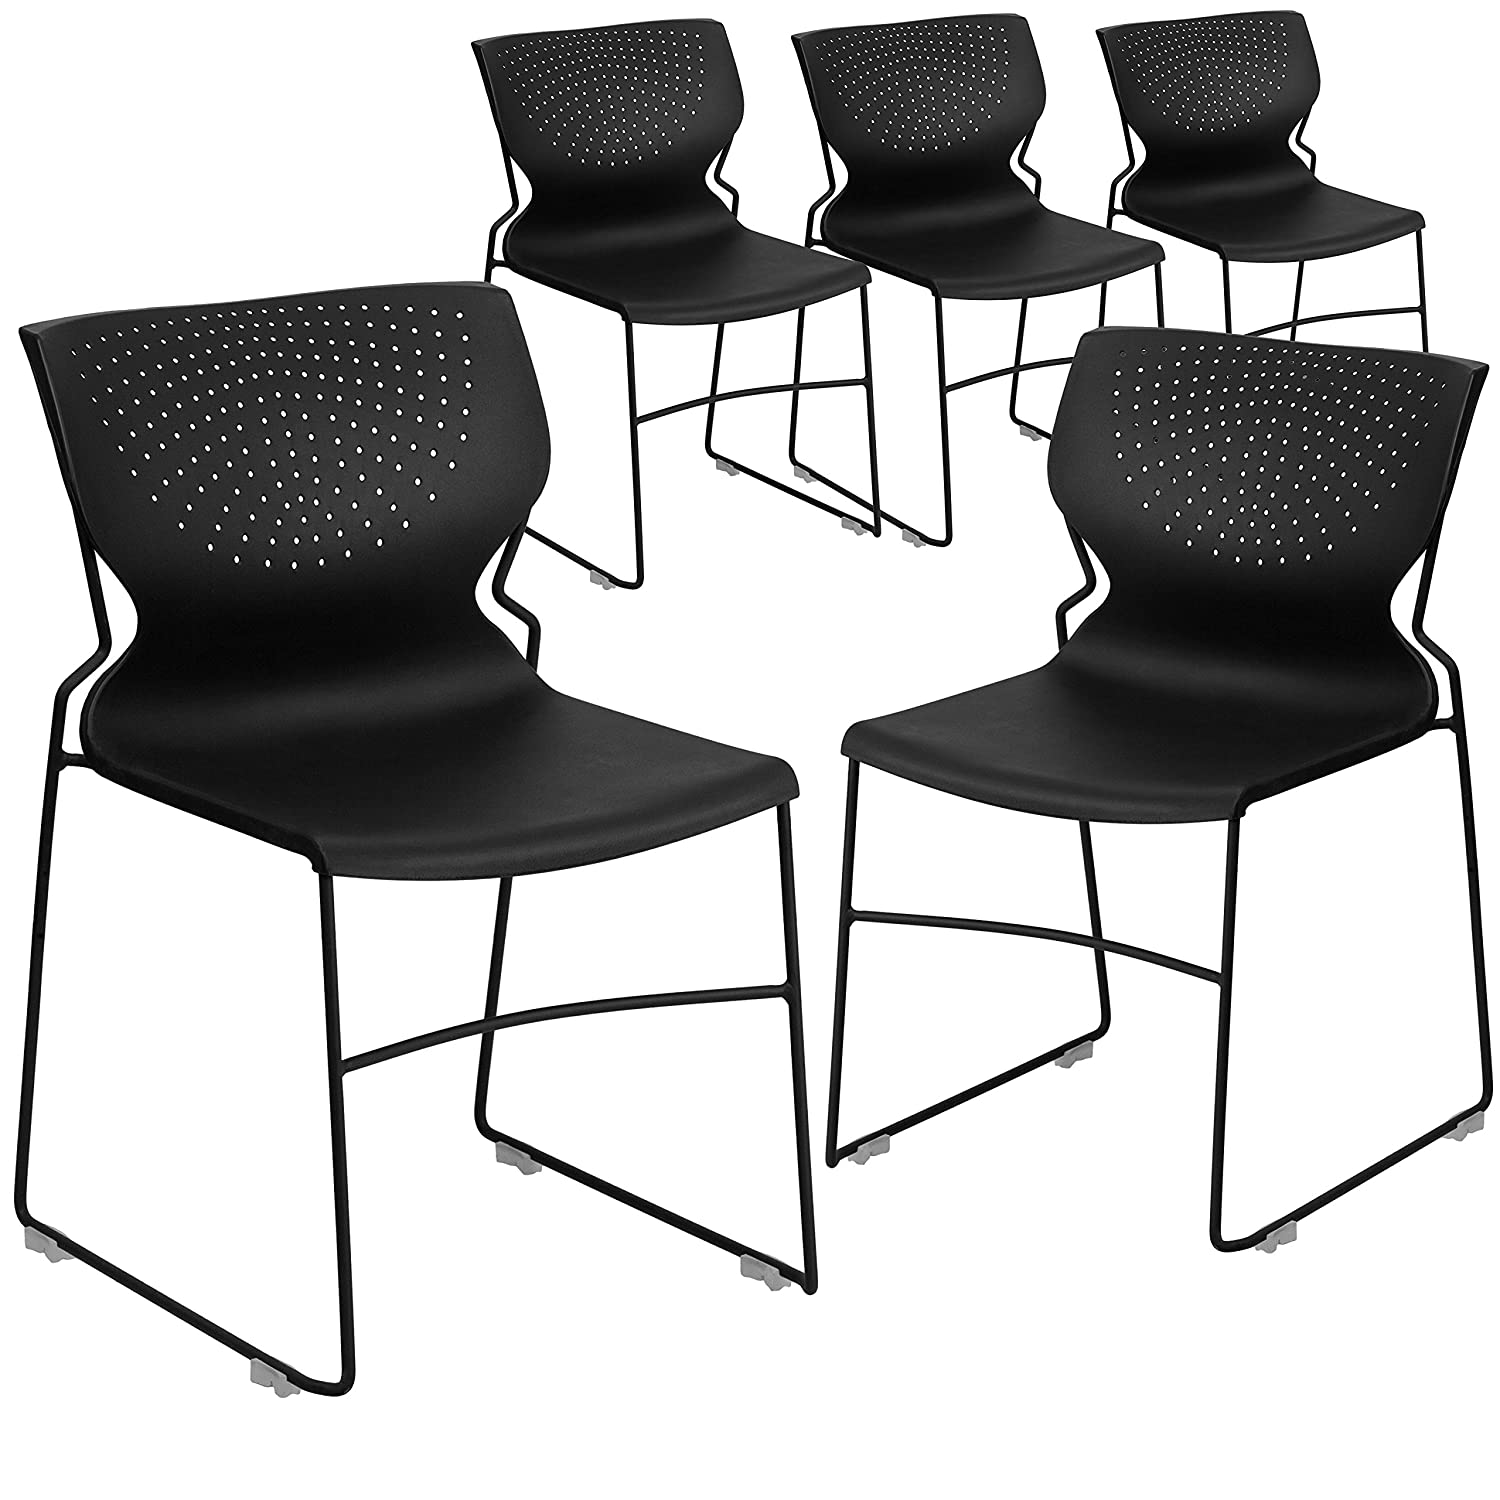 Flash Furniture 5 Pk. HERCULES Series 661 lb. Capacity Black Full Back Stack Chair with Black Frame